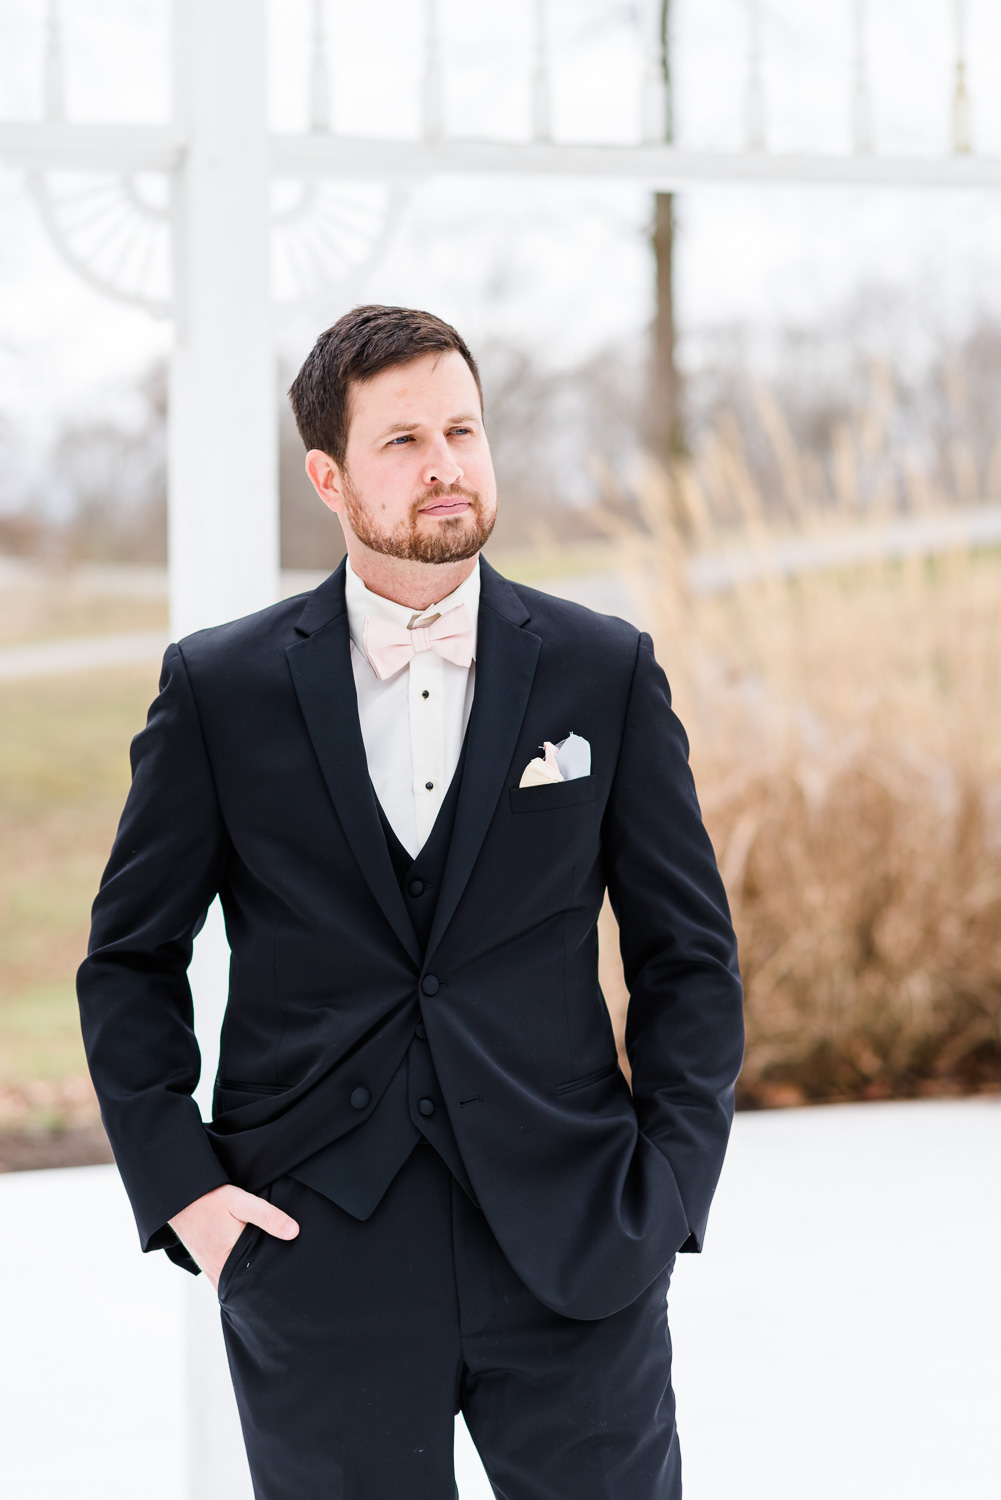 groom wearing a black suit waiting outside at a gazebo.